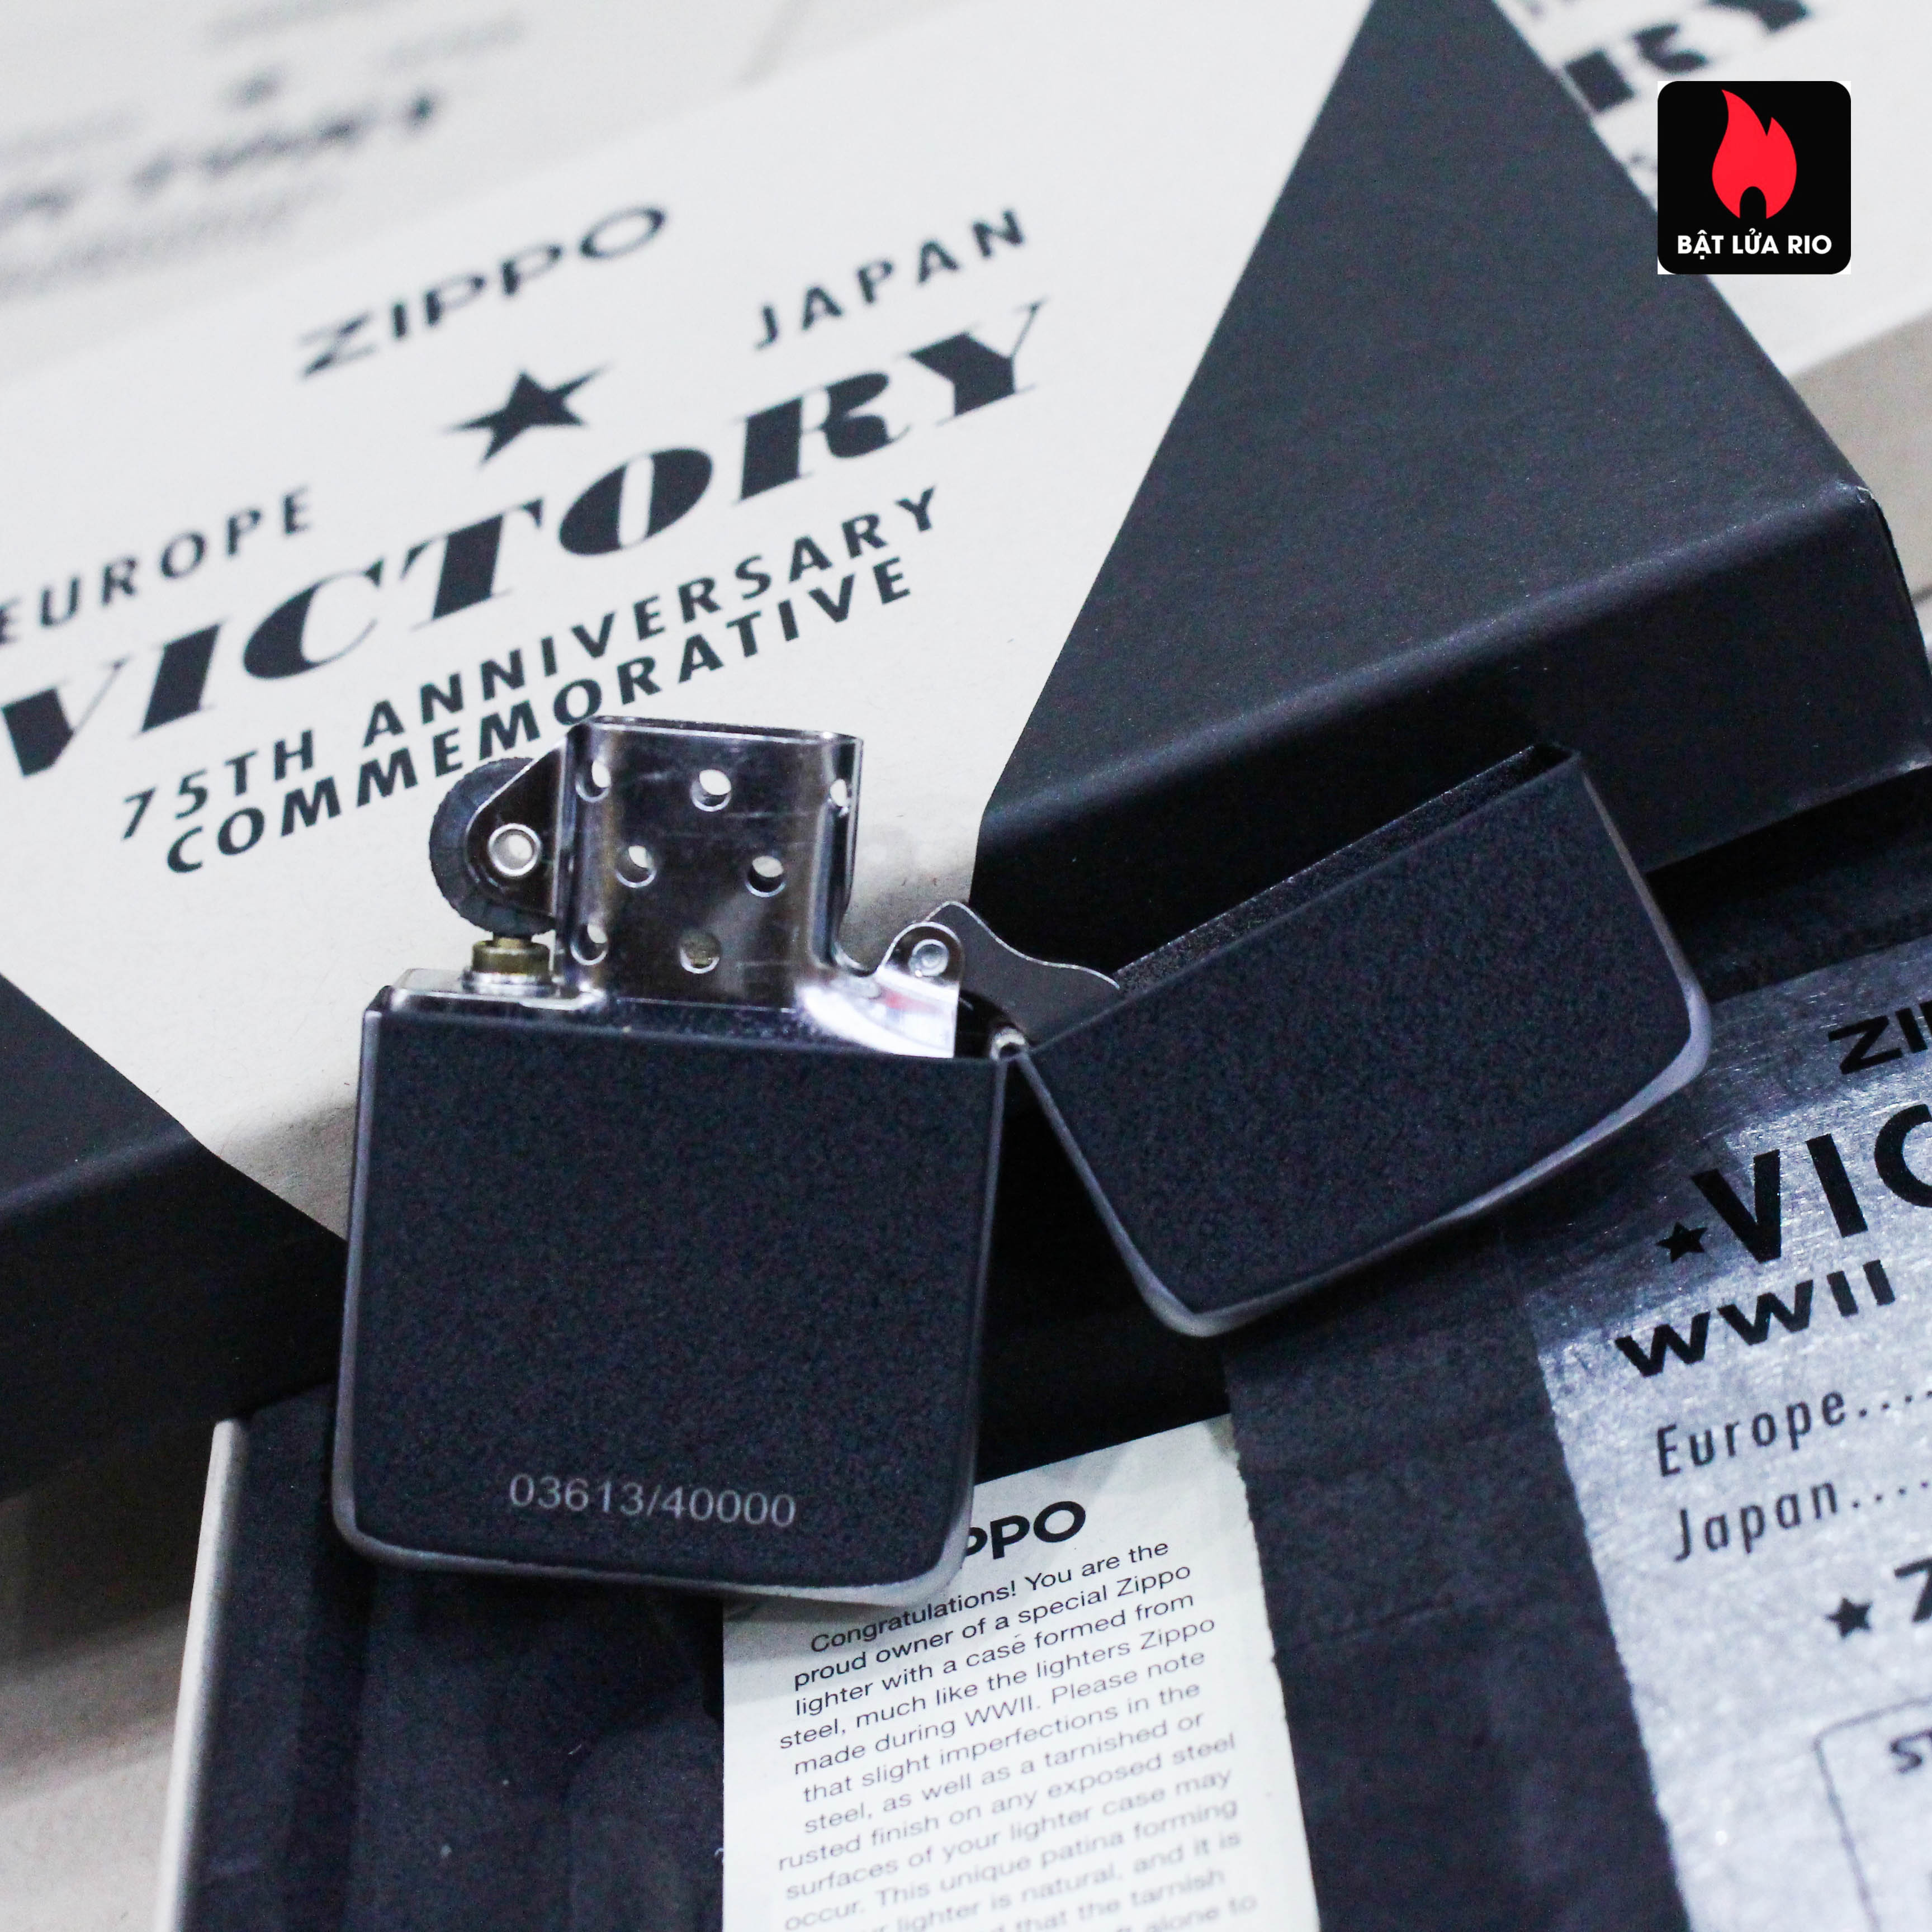 Zippo VE/VJ 75th Anniversary Collectible Steel Case - Zippo Victory in Europe & Japan Collectible Lighter - Zippo 49264 56